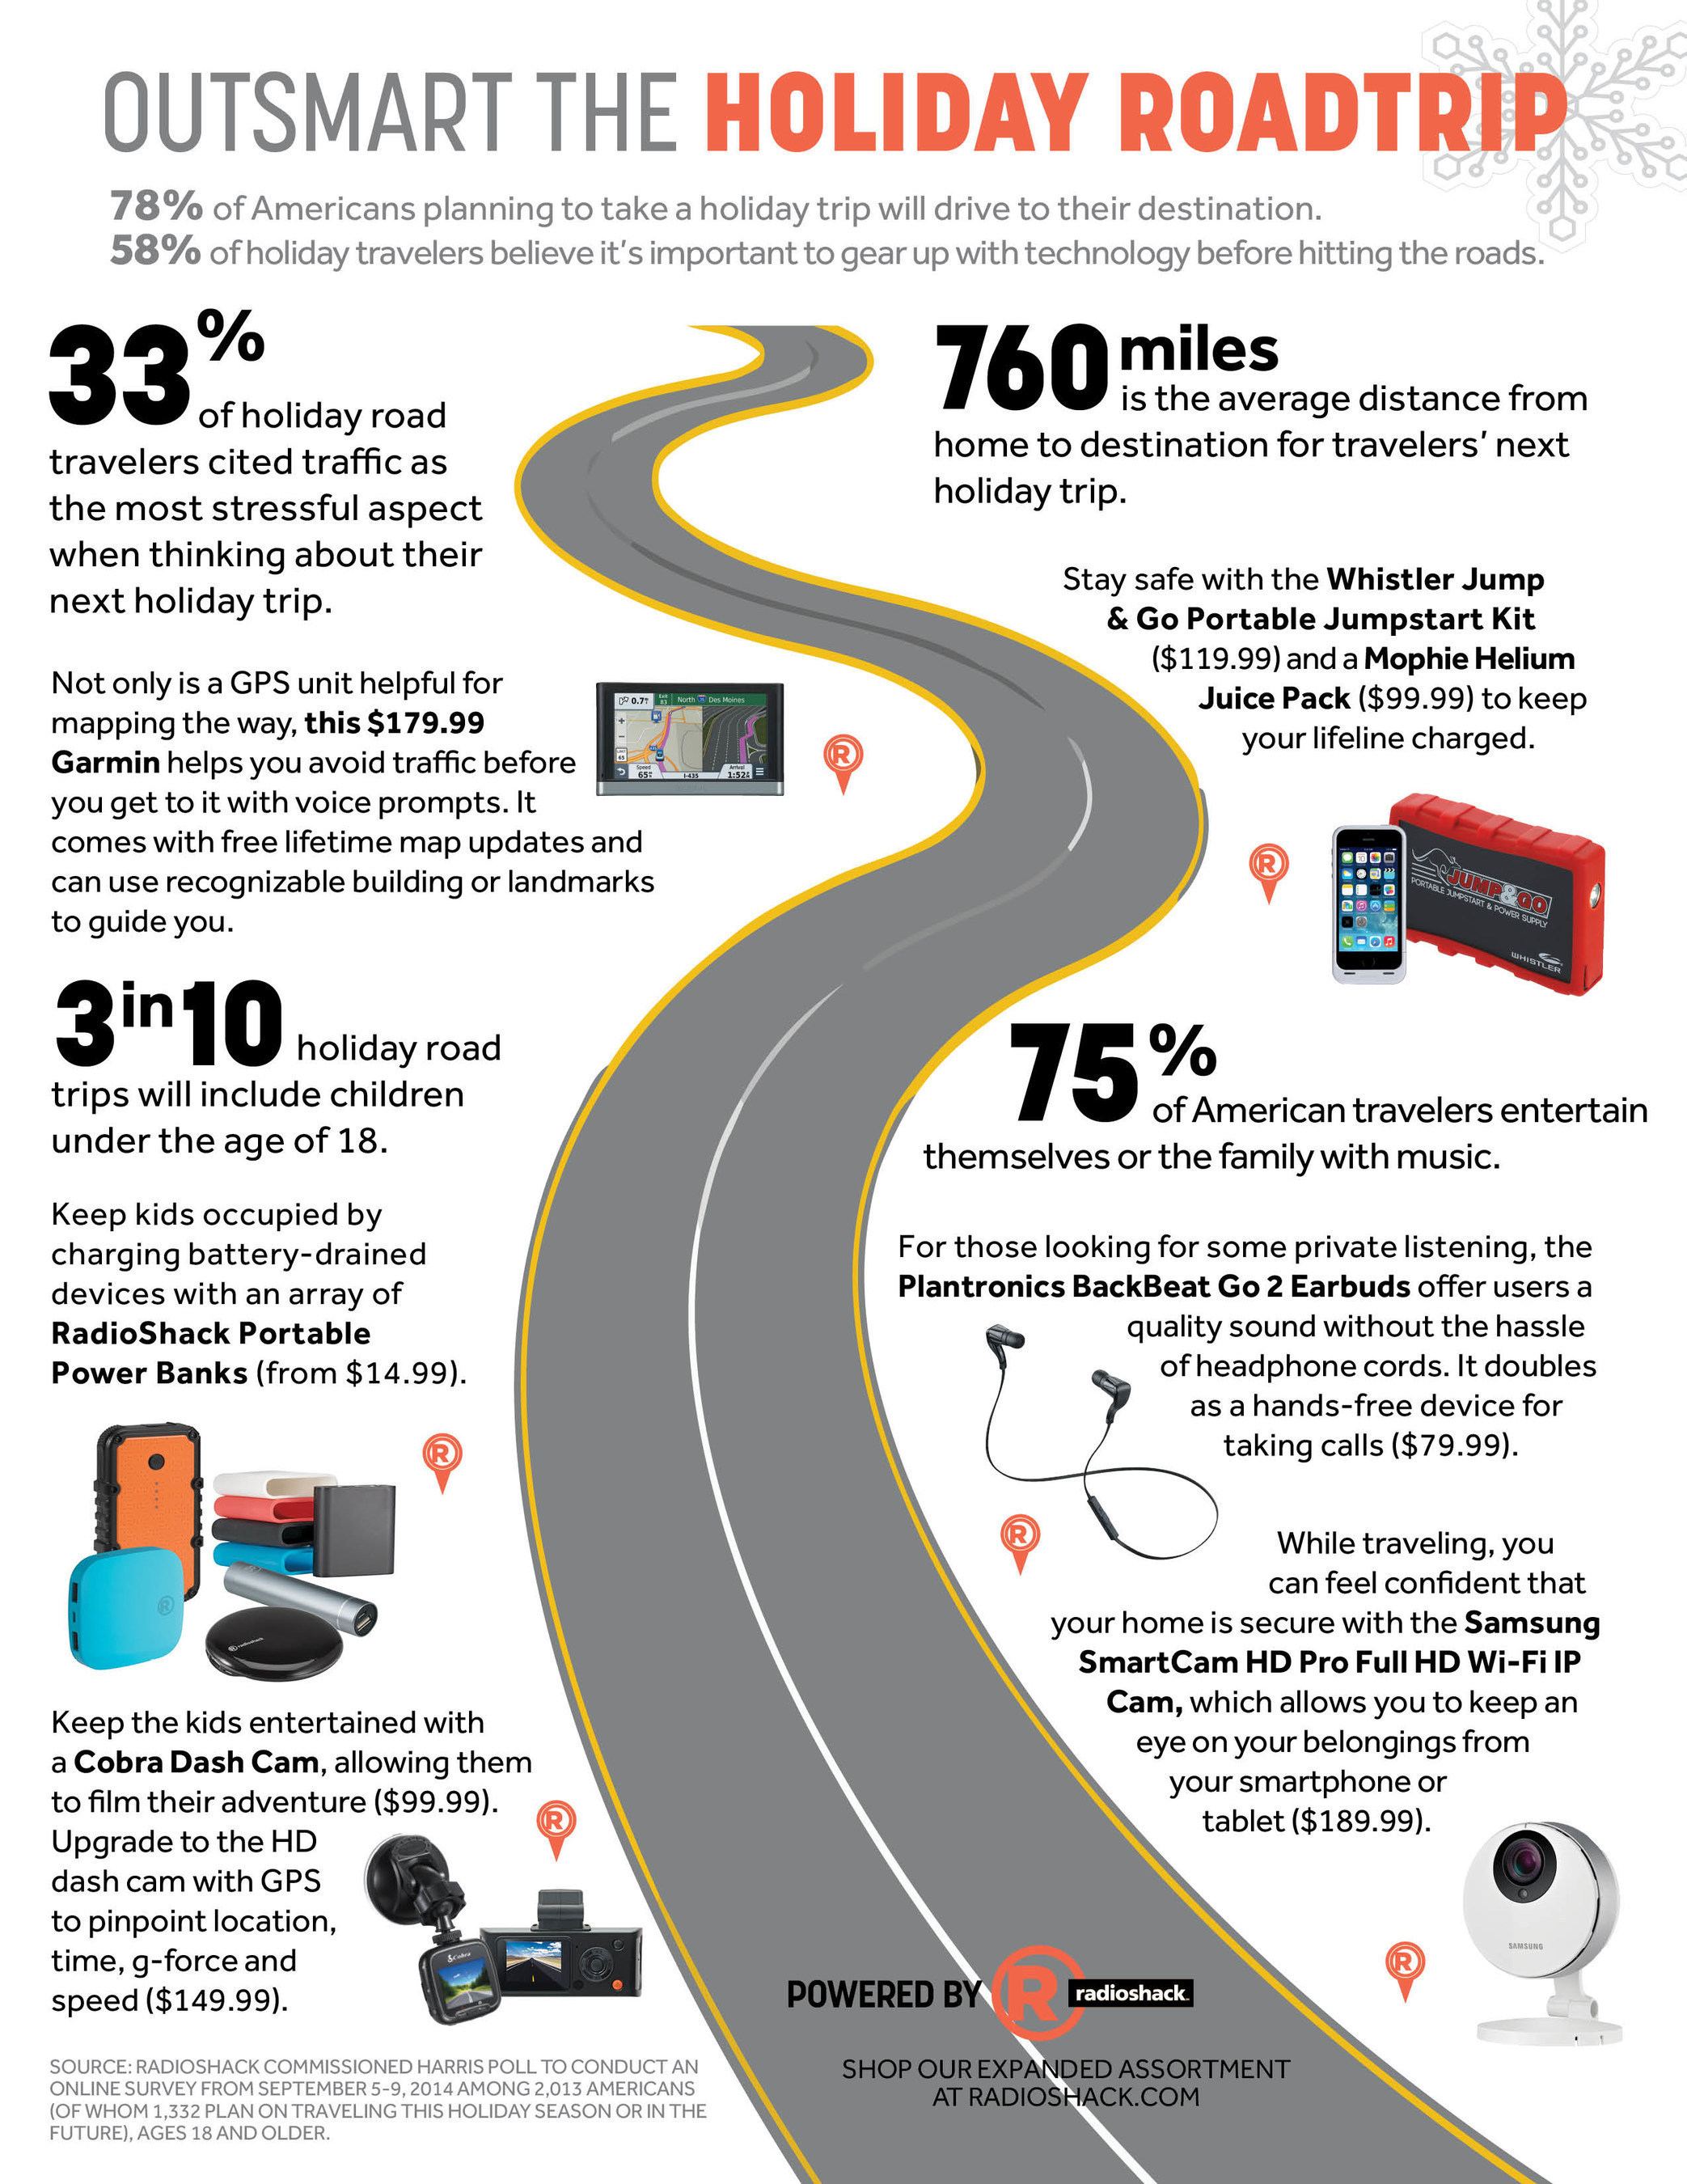 RadioShack has the right technology to make sure you keep moving and stay connected as you travel over the next  ...